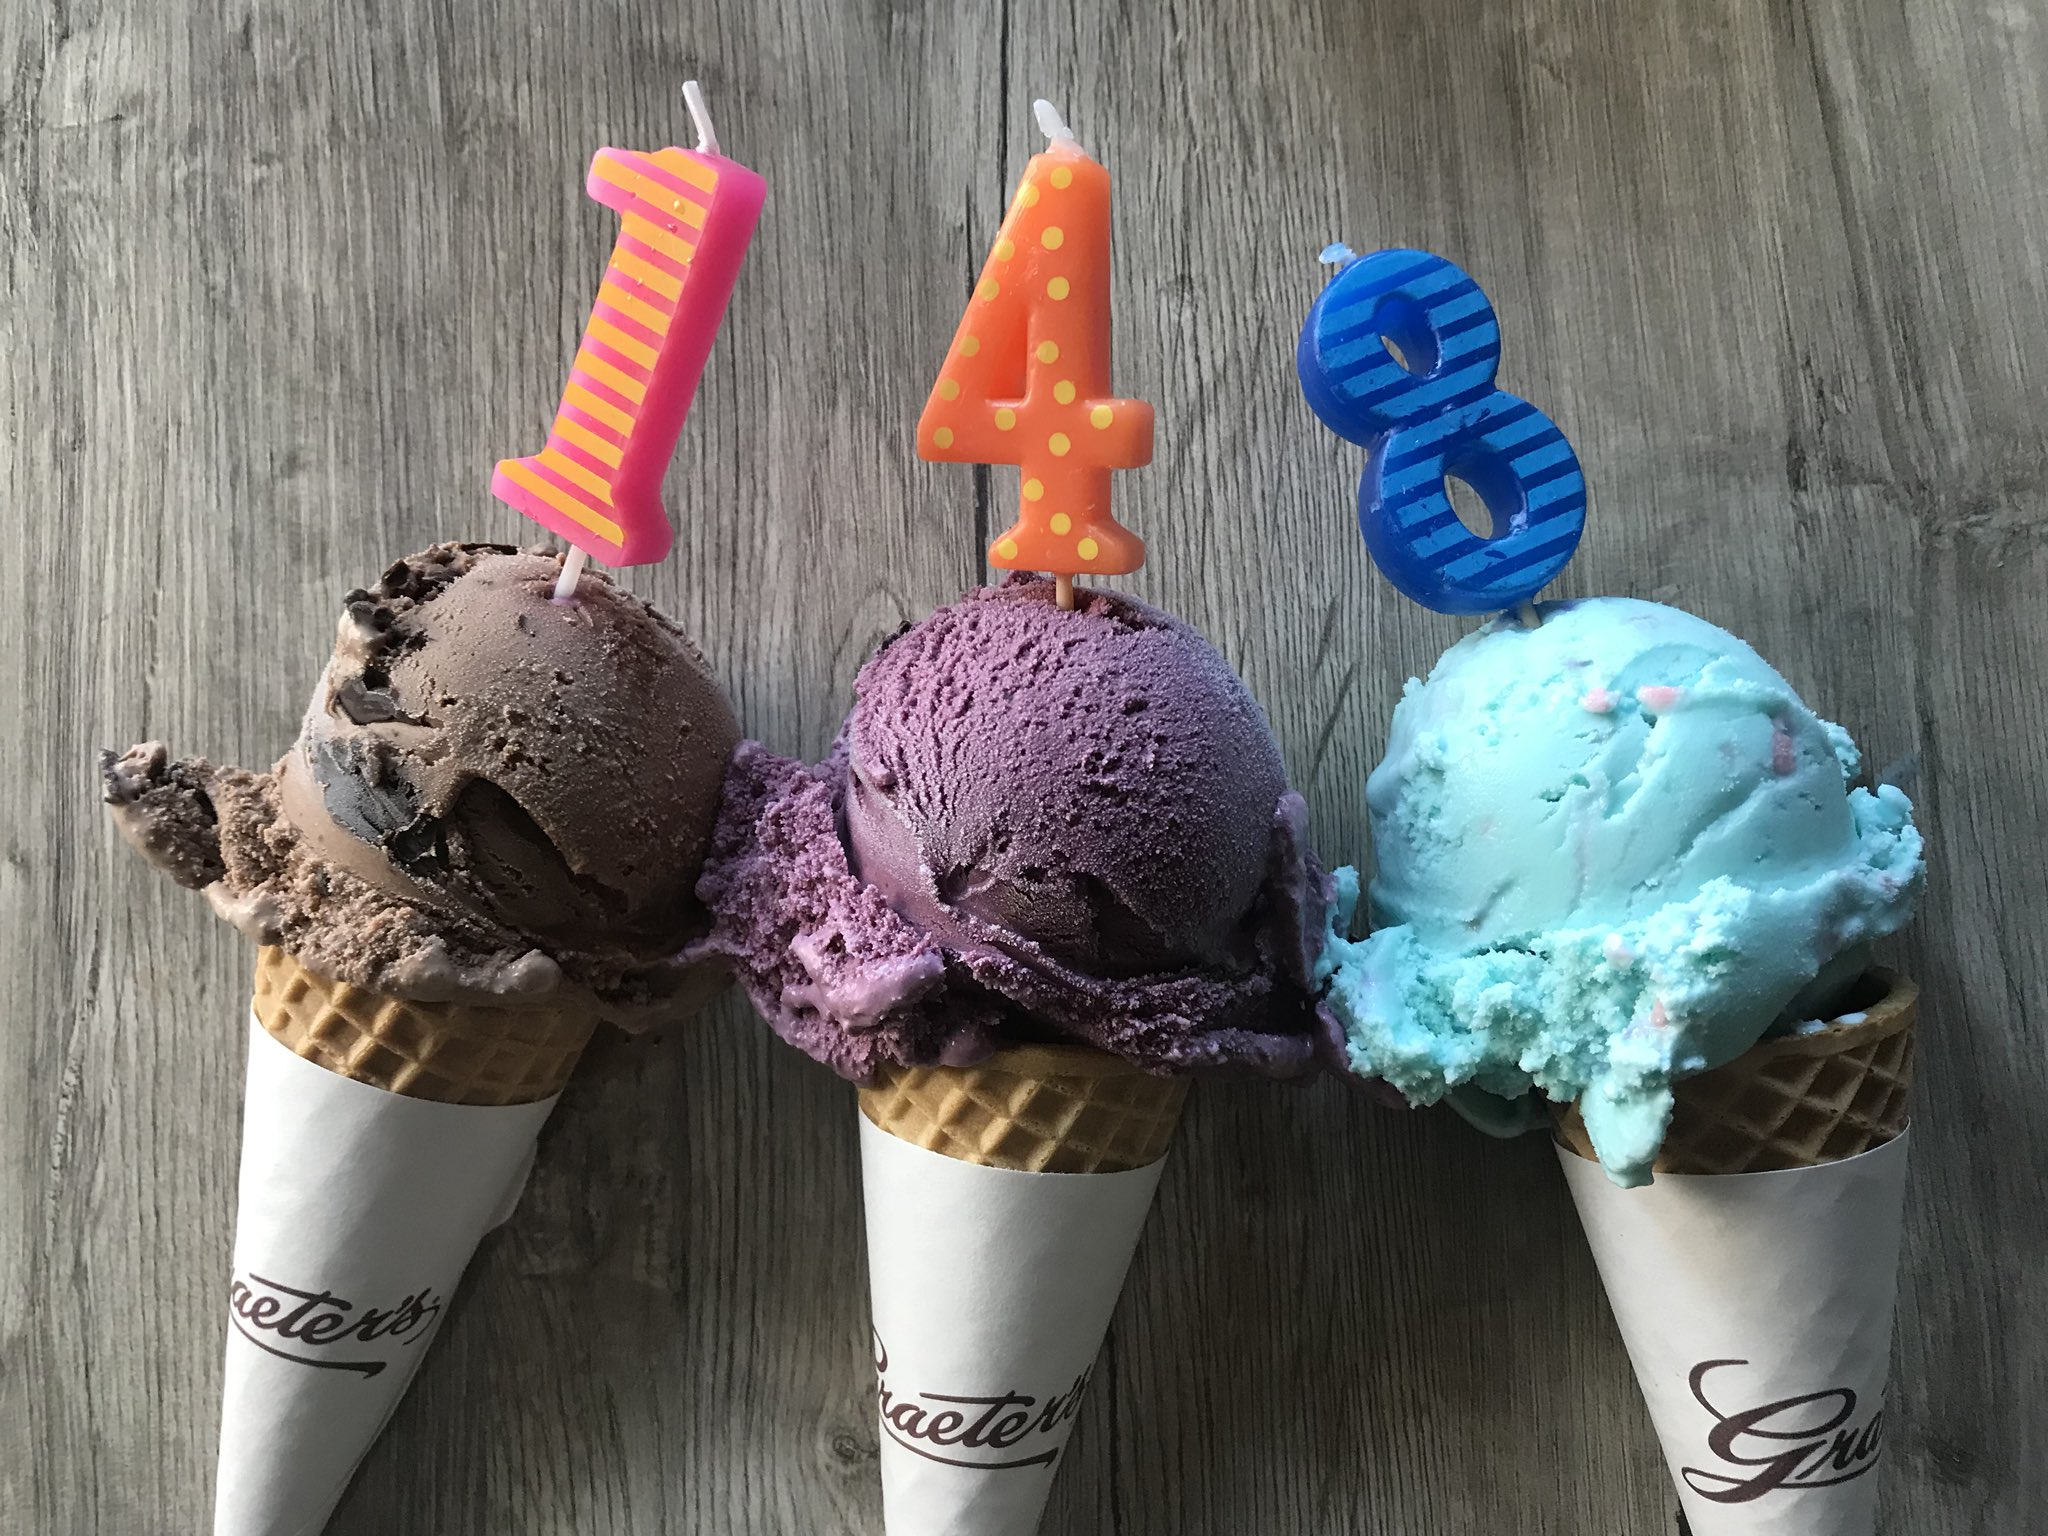 🎉🍦Our birthday weekend is here! We're celebrating 148 years of handcrafted ice cream on Sunday, July 15th. Stay tuned on our social channels for giveaways, store offers and more! https://t.co/1nfHgpO4OQ